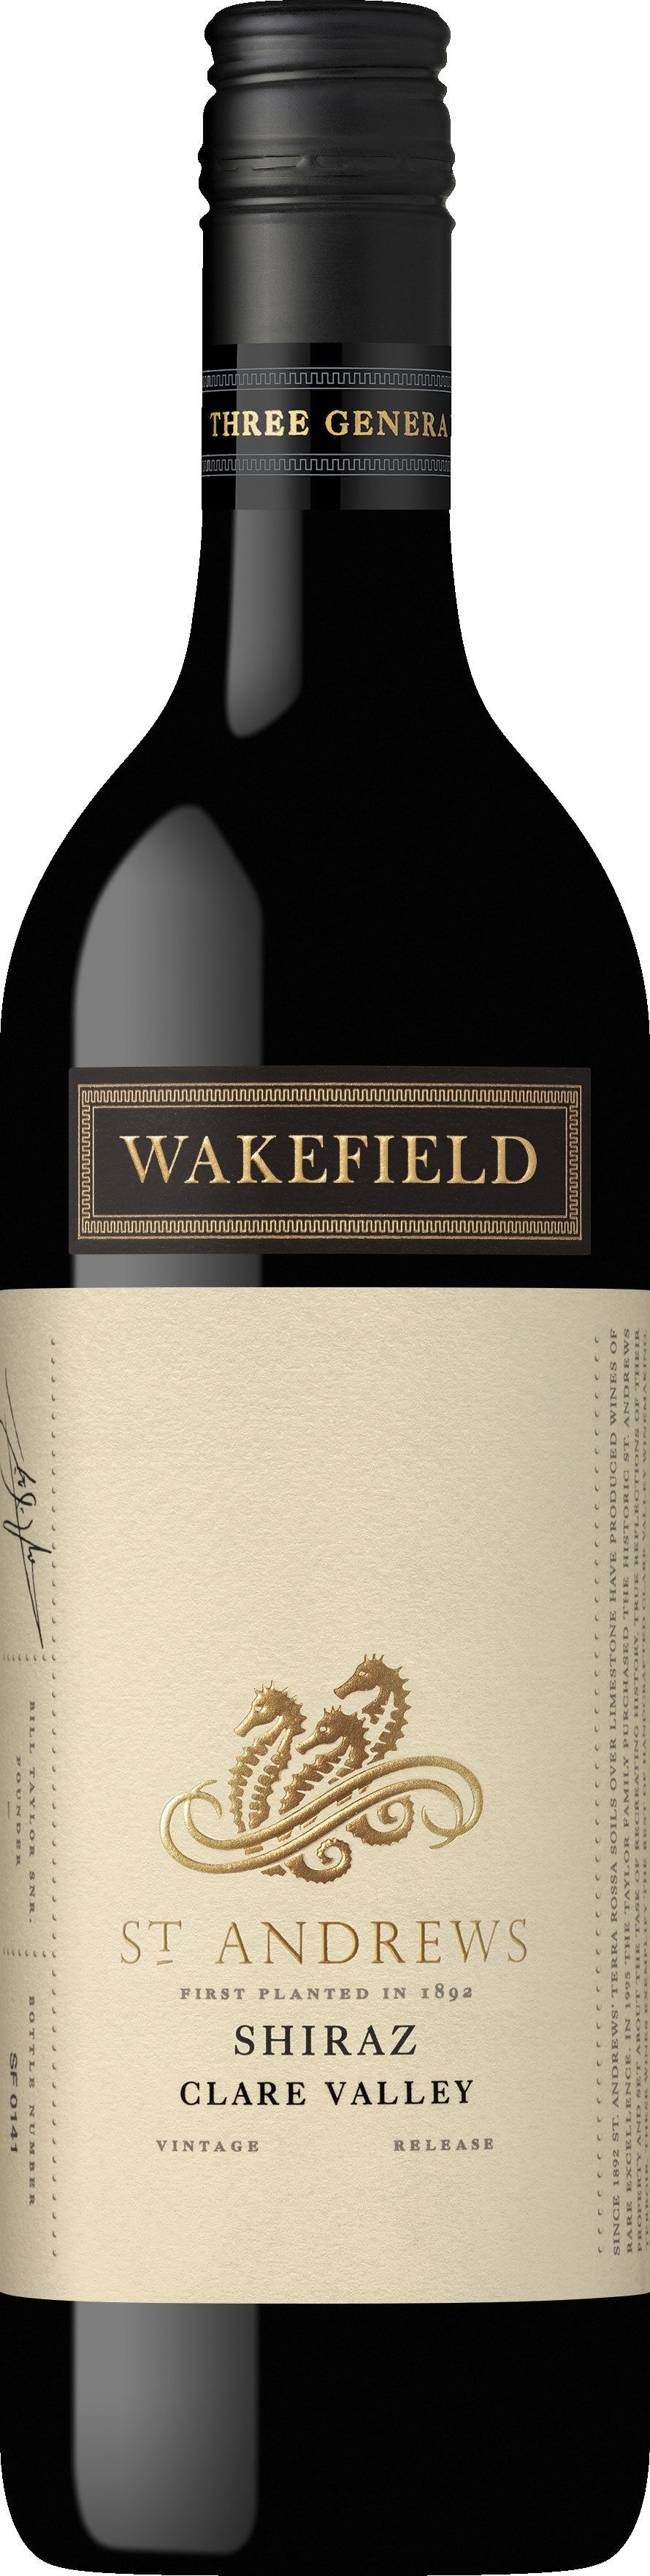 Wakefield Wines - St Andrews Shiraz 2014 6x 75cl Bottles